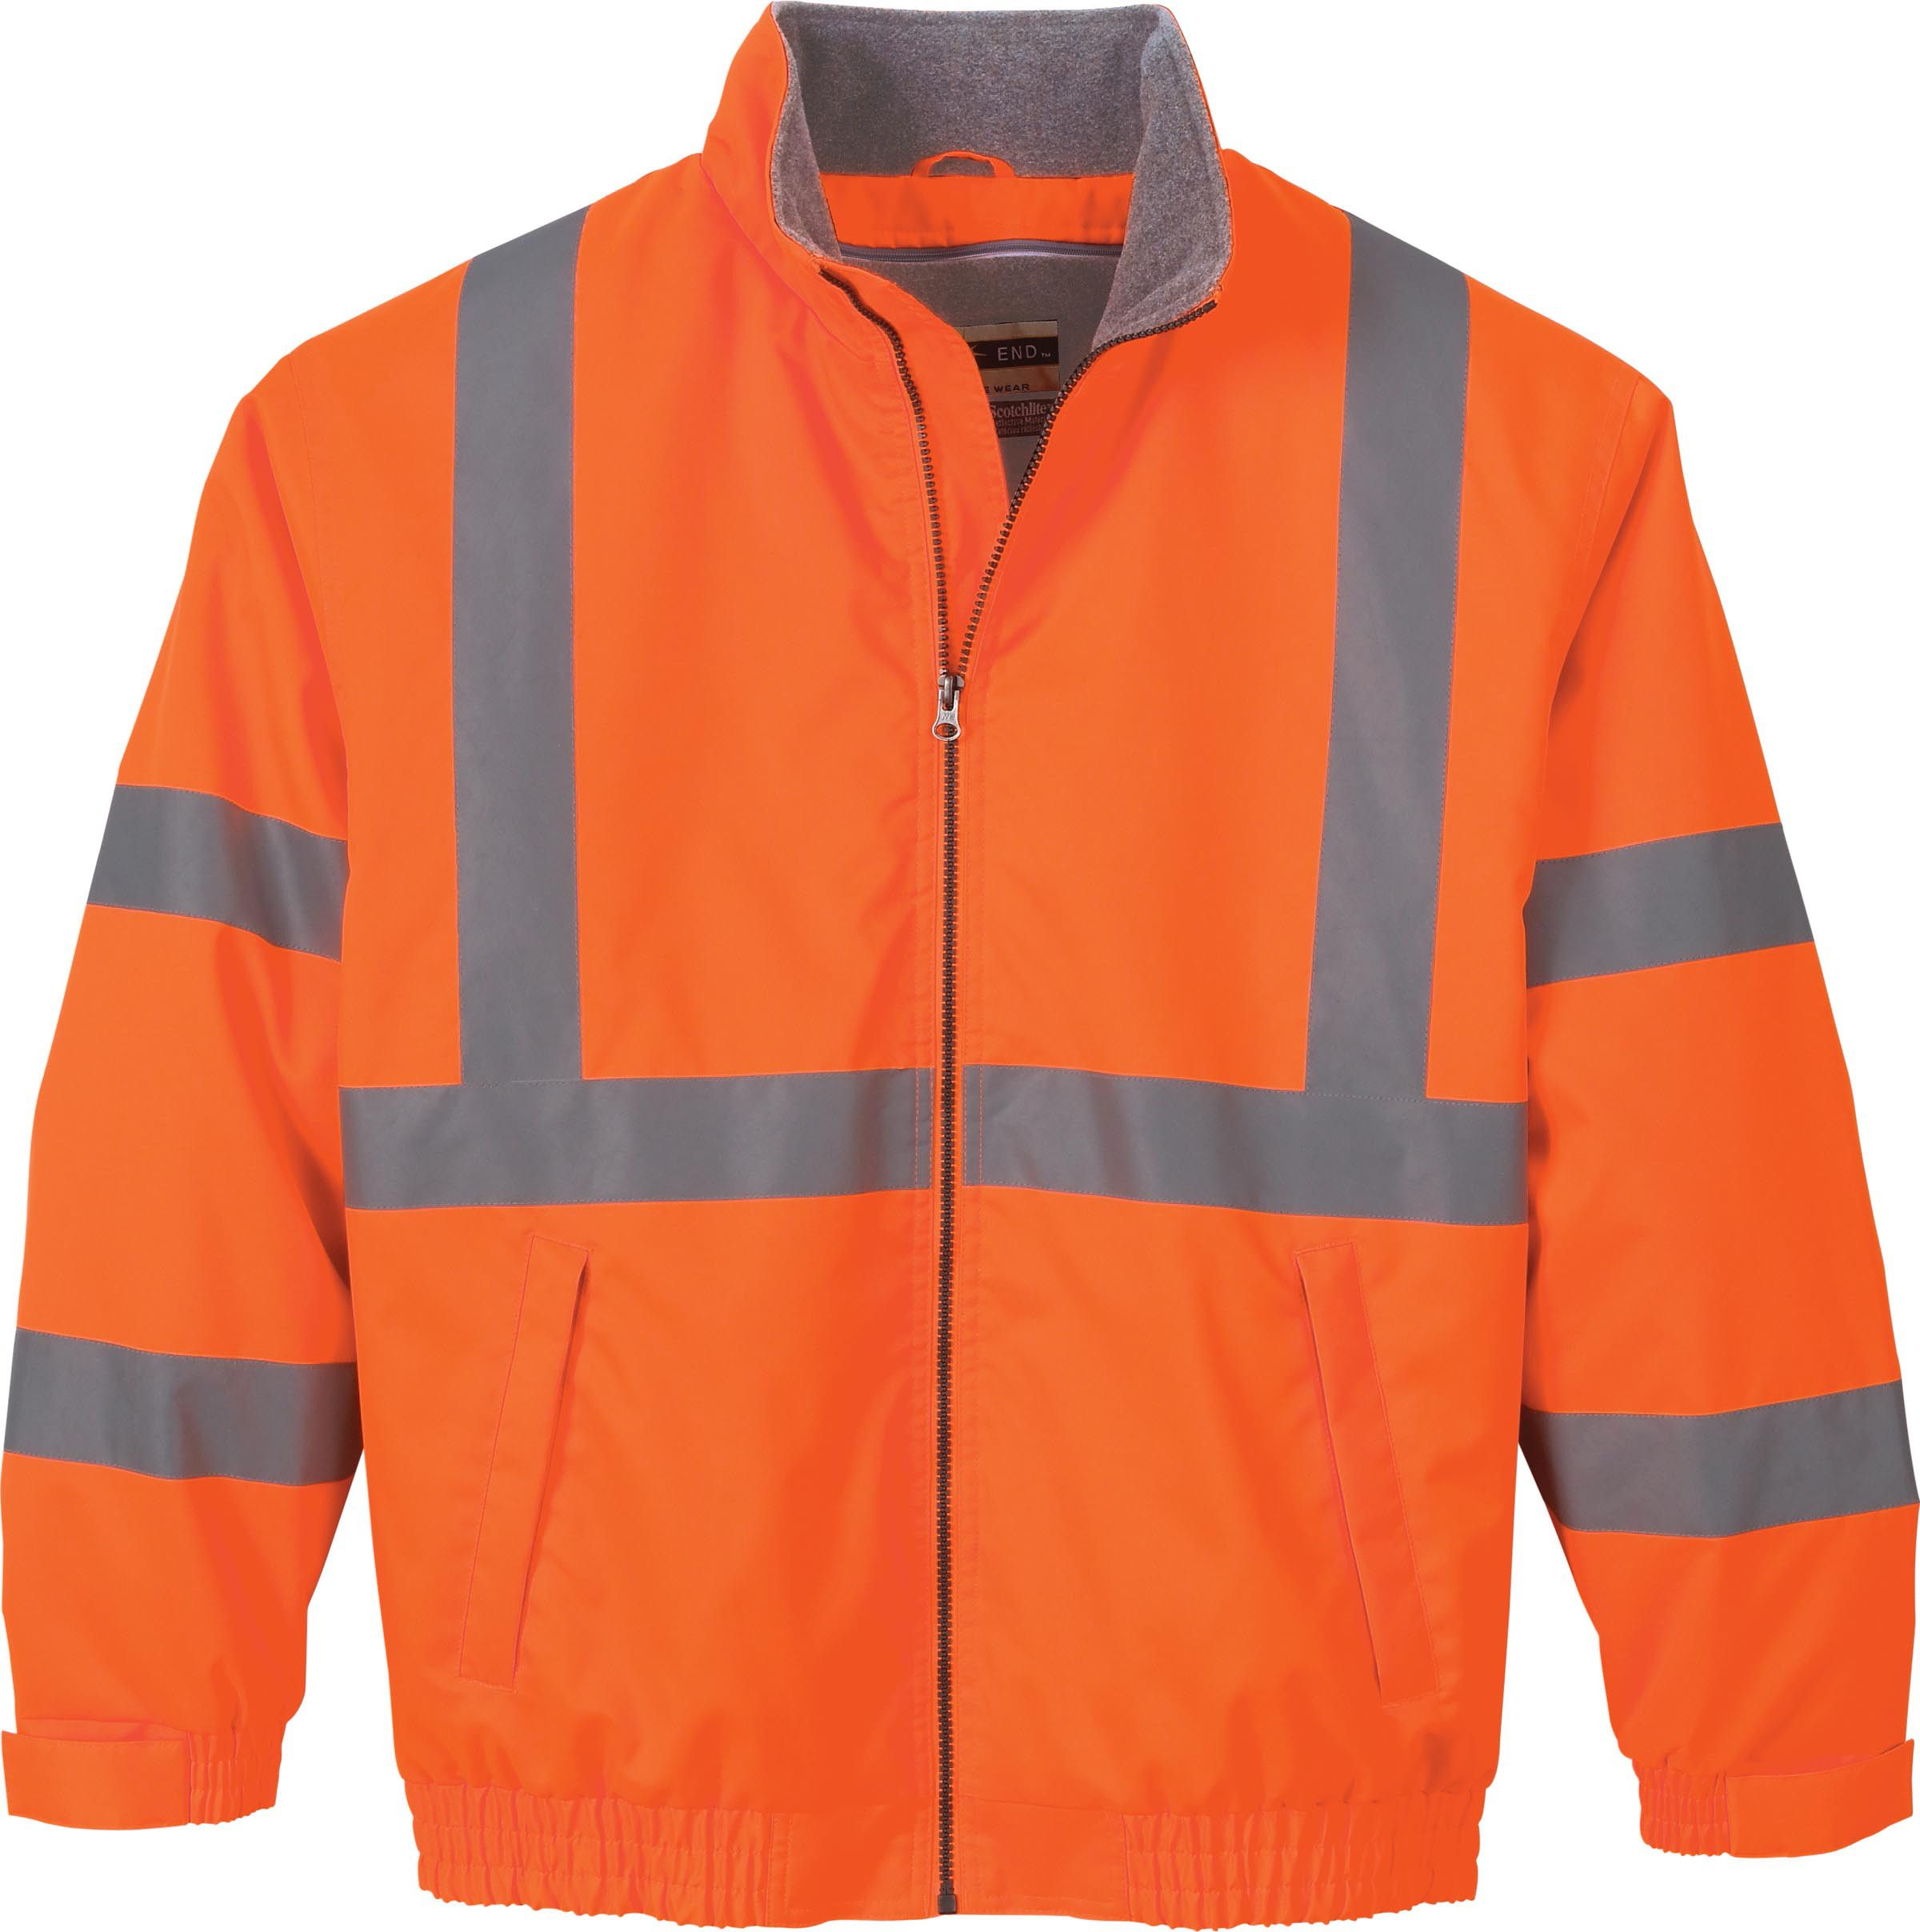 88705 MEN'S VERTICAL STRIPE INSULATED SAFETY JACKETS